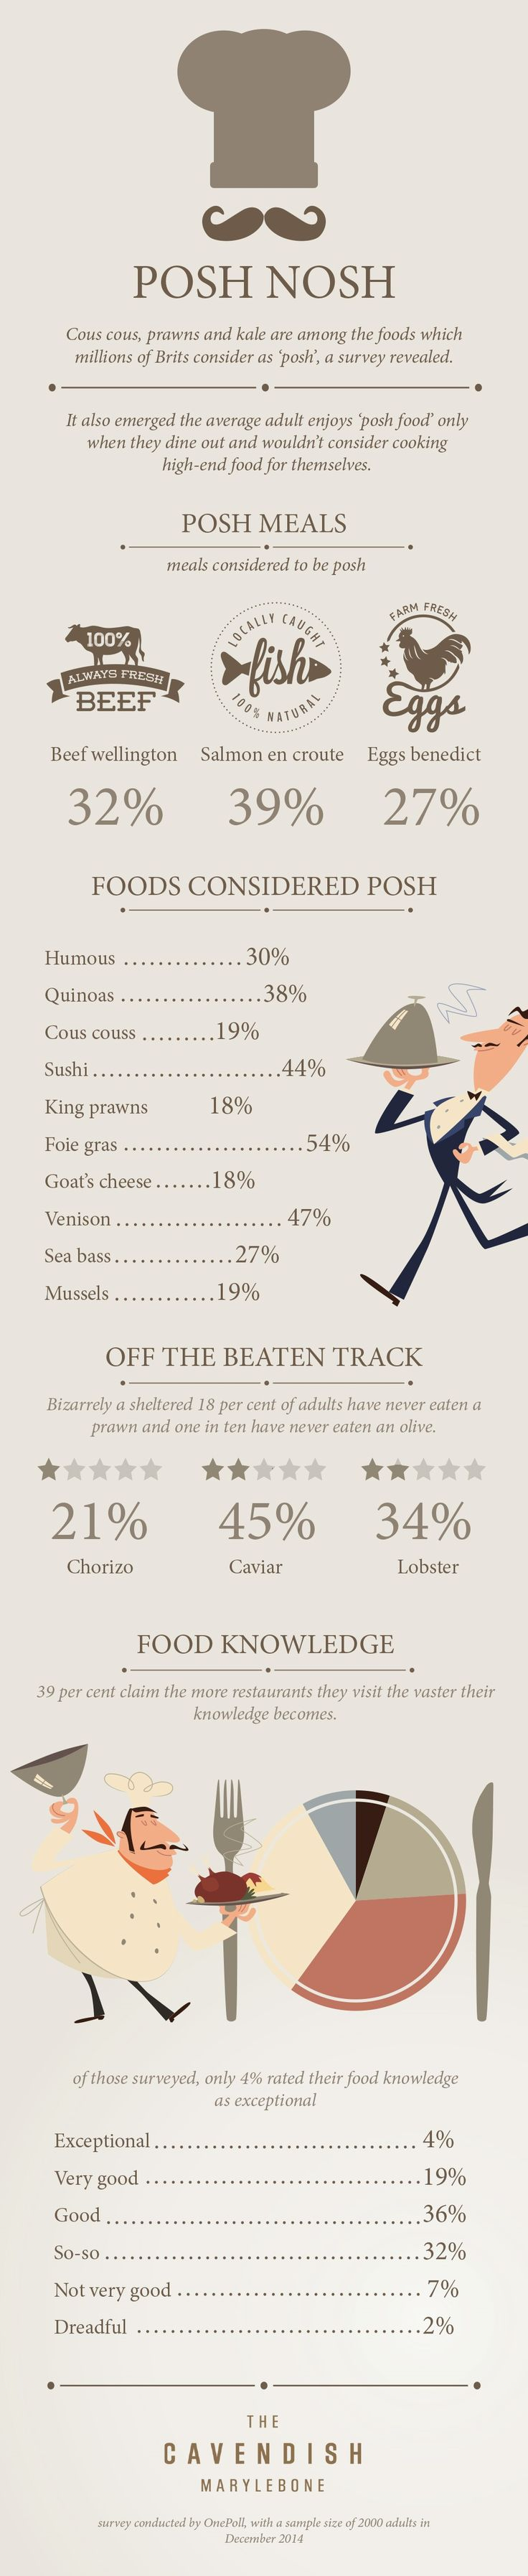 Infographic Drench designed for The Cavendish Marylebone about people's concepts of posh food. Research/stats by Onepoll. #design #infographics #infographic